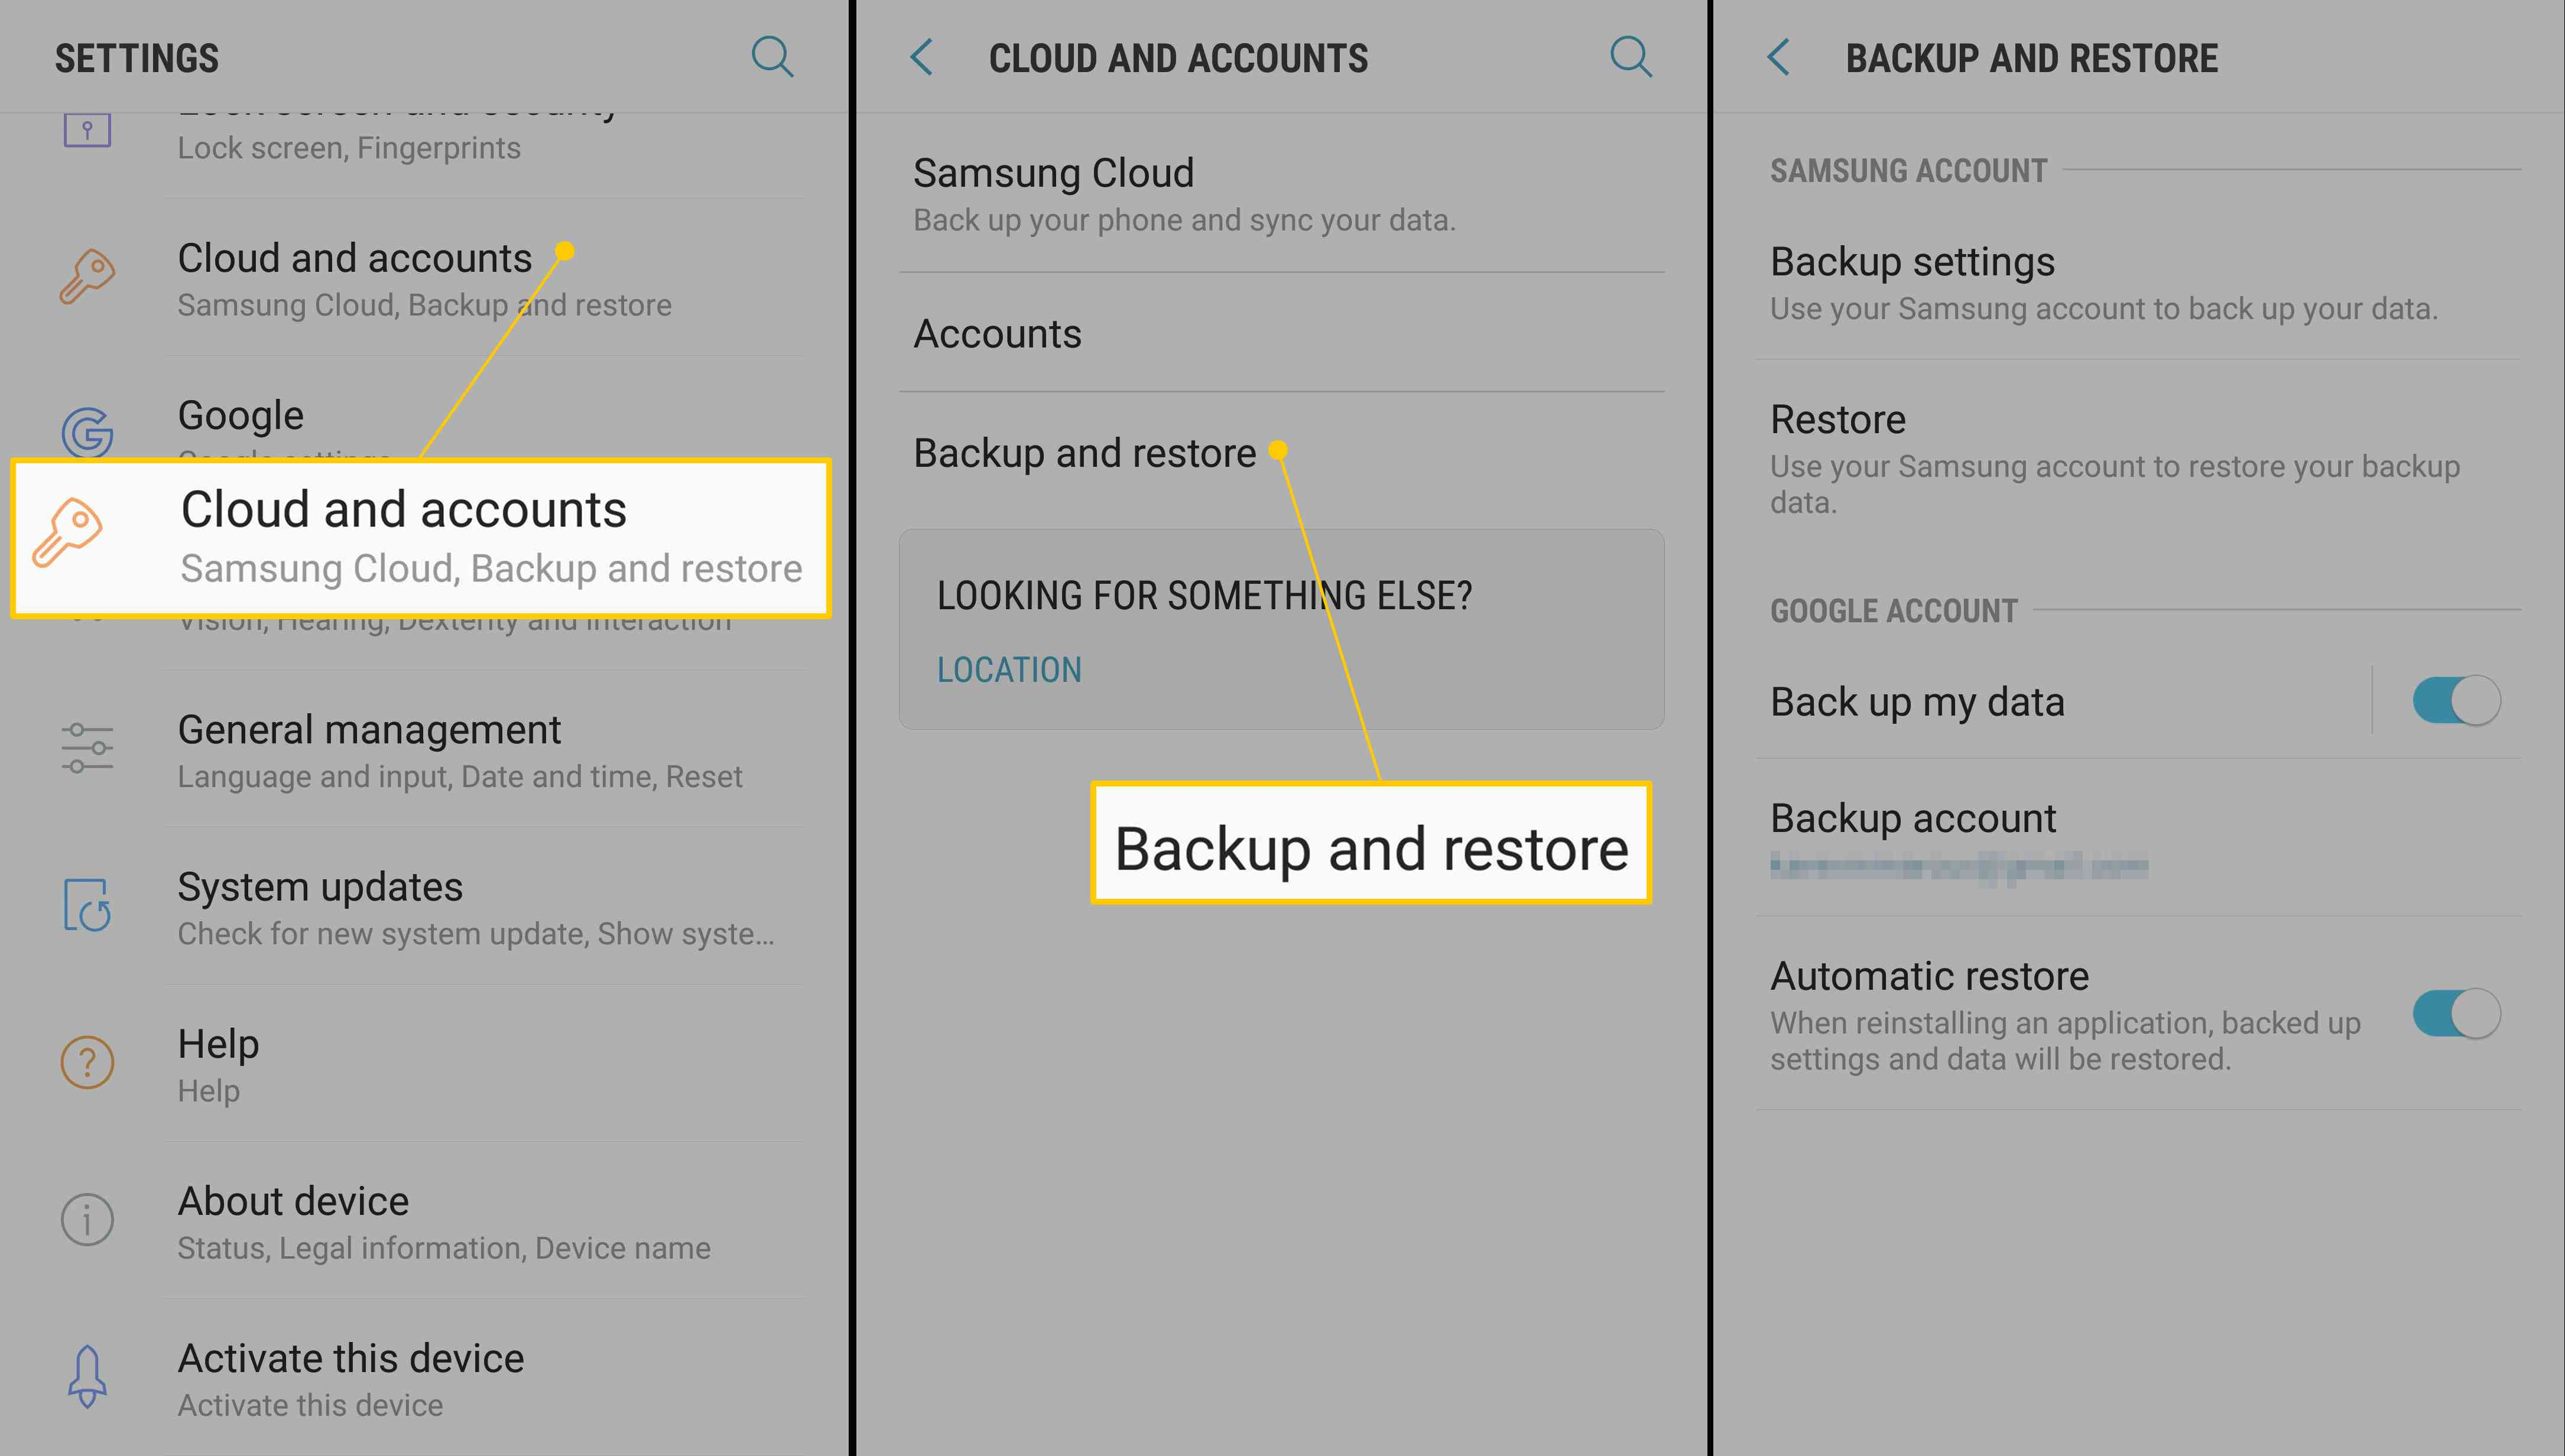 Cloud and accounts, Backup and restore, options in Android Settings